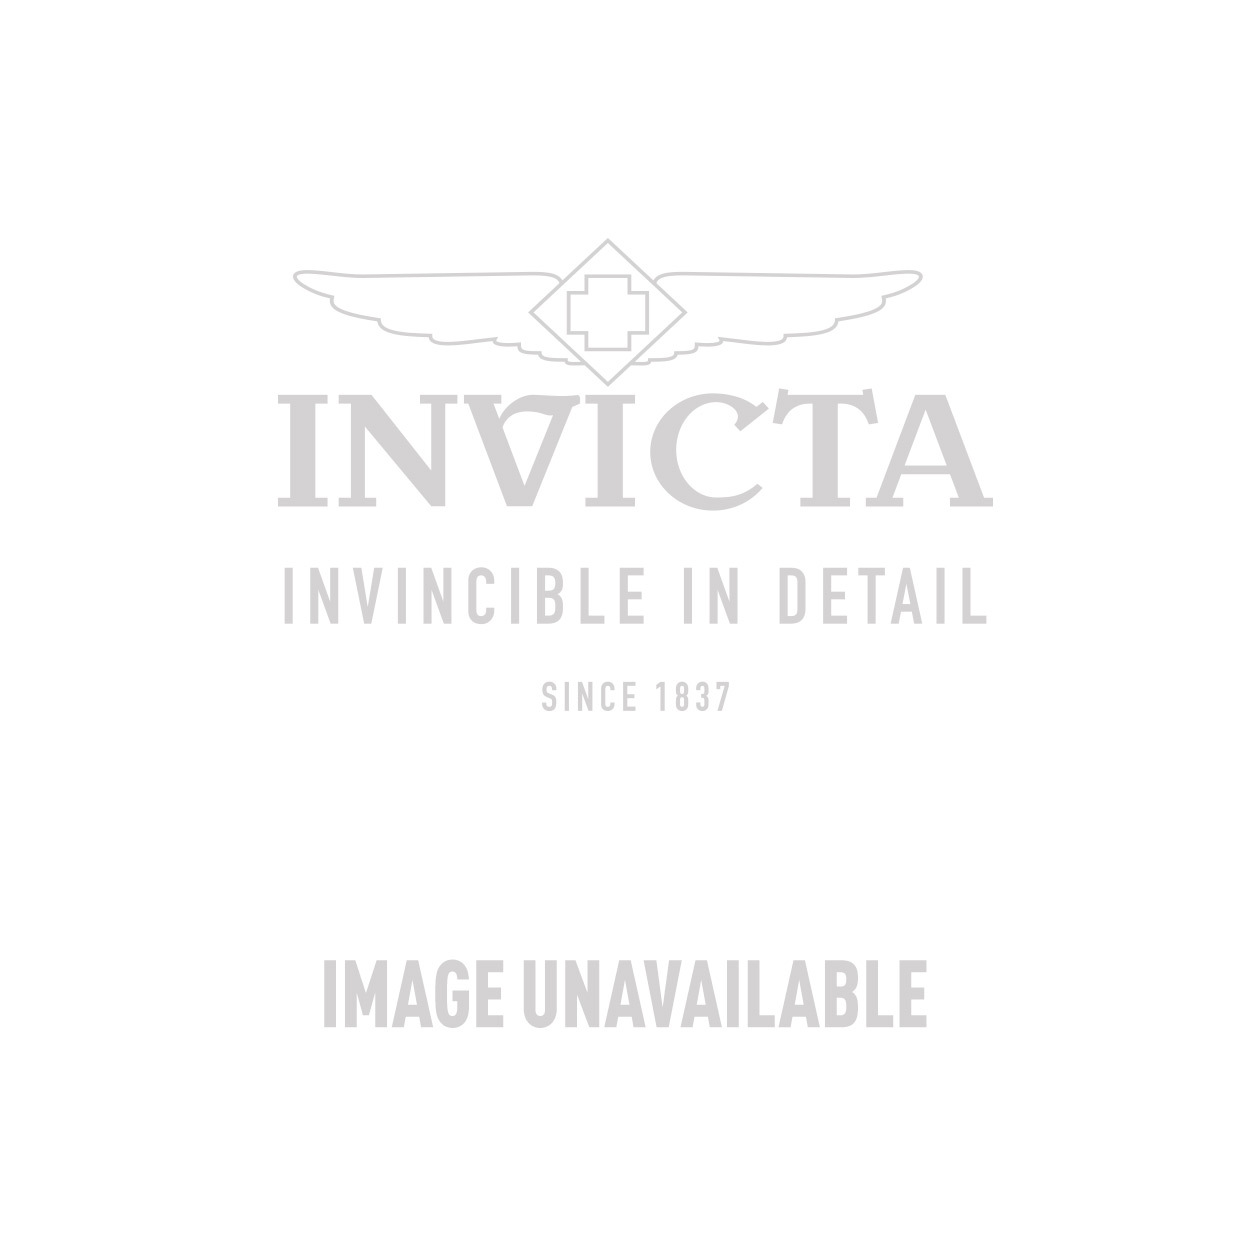 Invicta Bolt Swiss Made Quartz Watch - Brown case with Steel, Brown tone Stainless Steel band - Model 13749